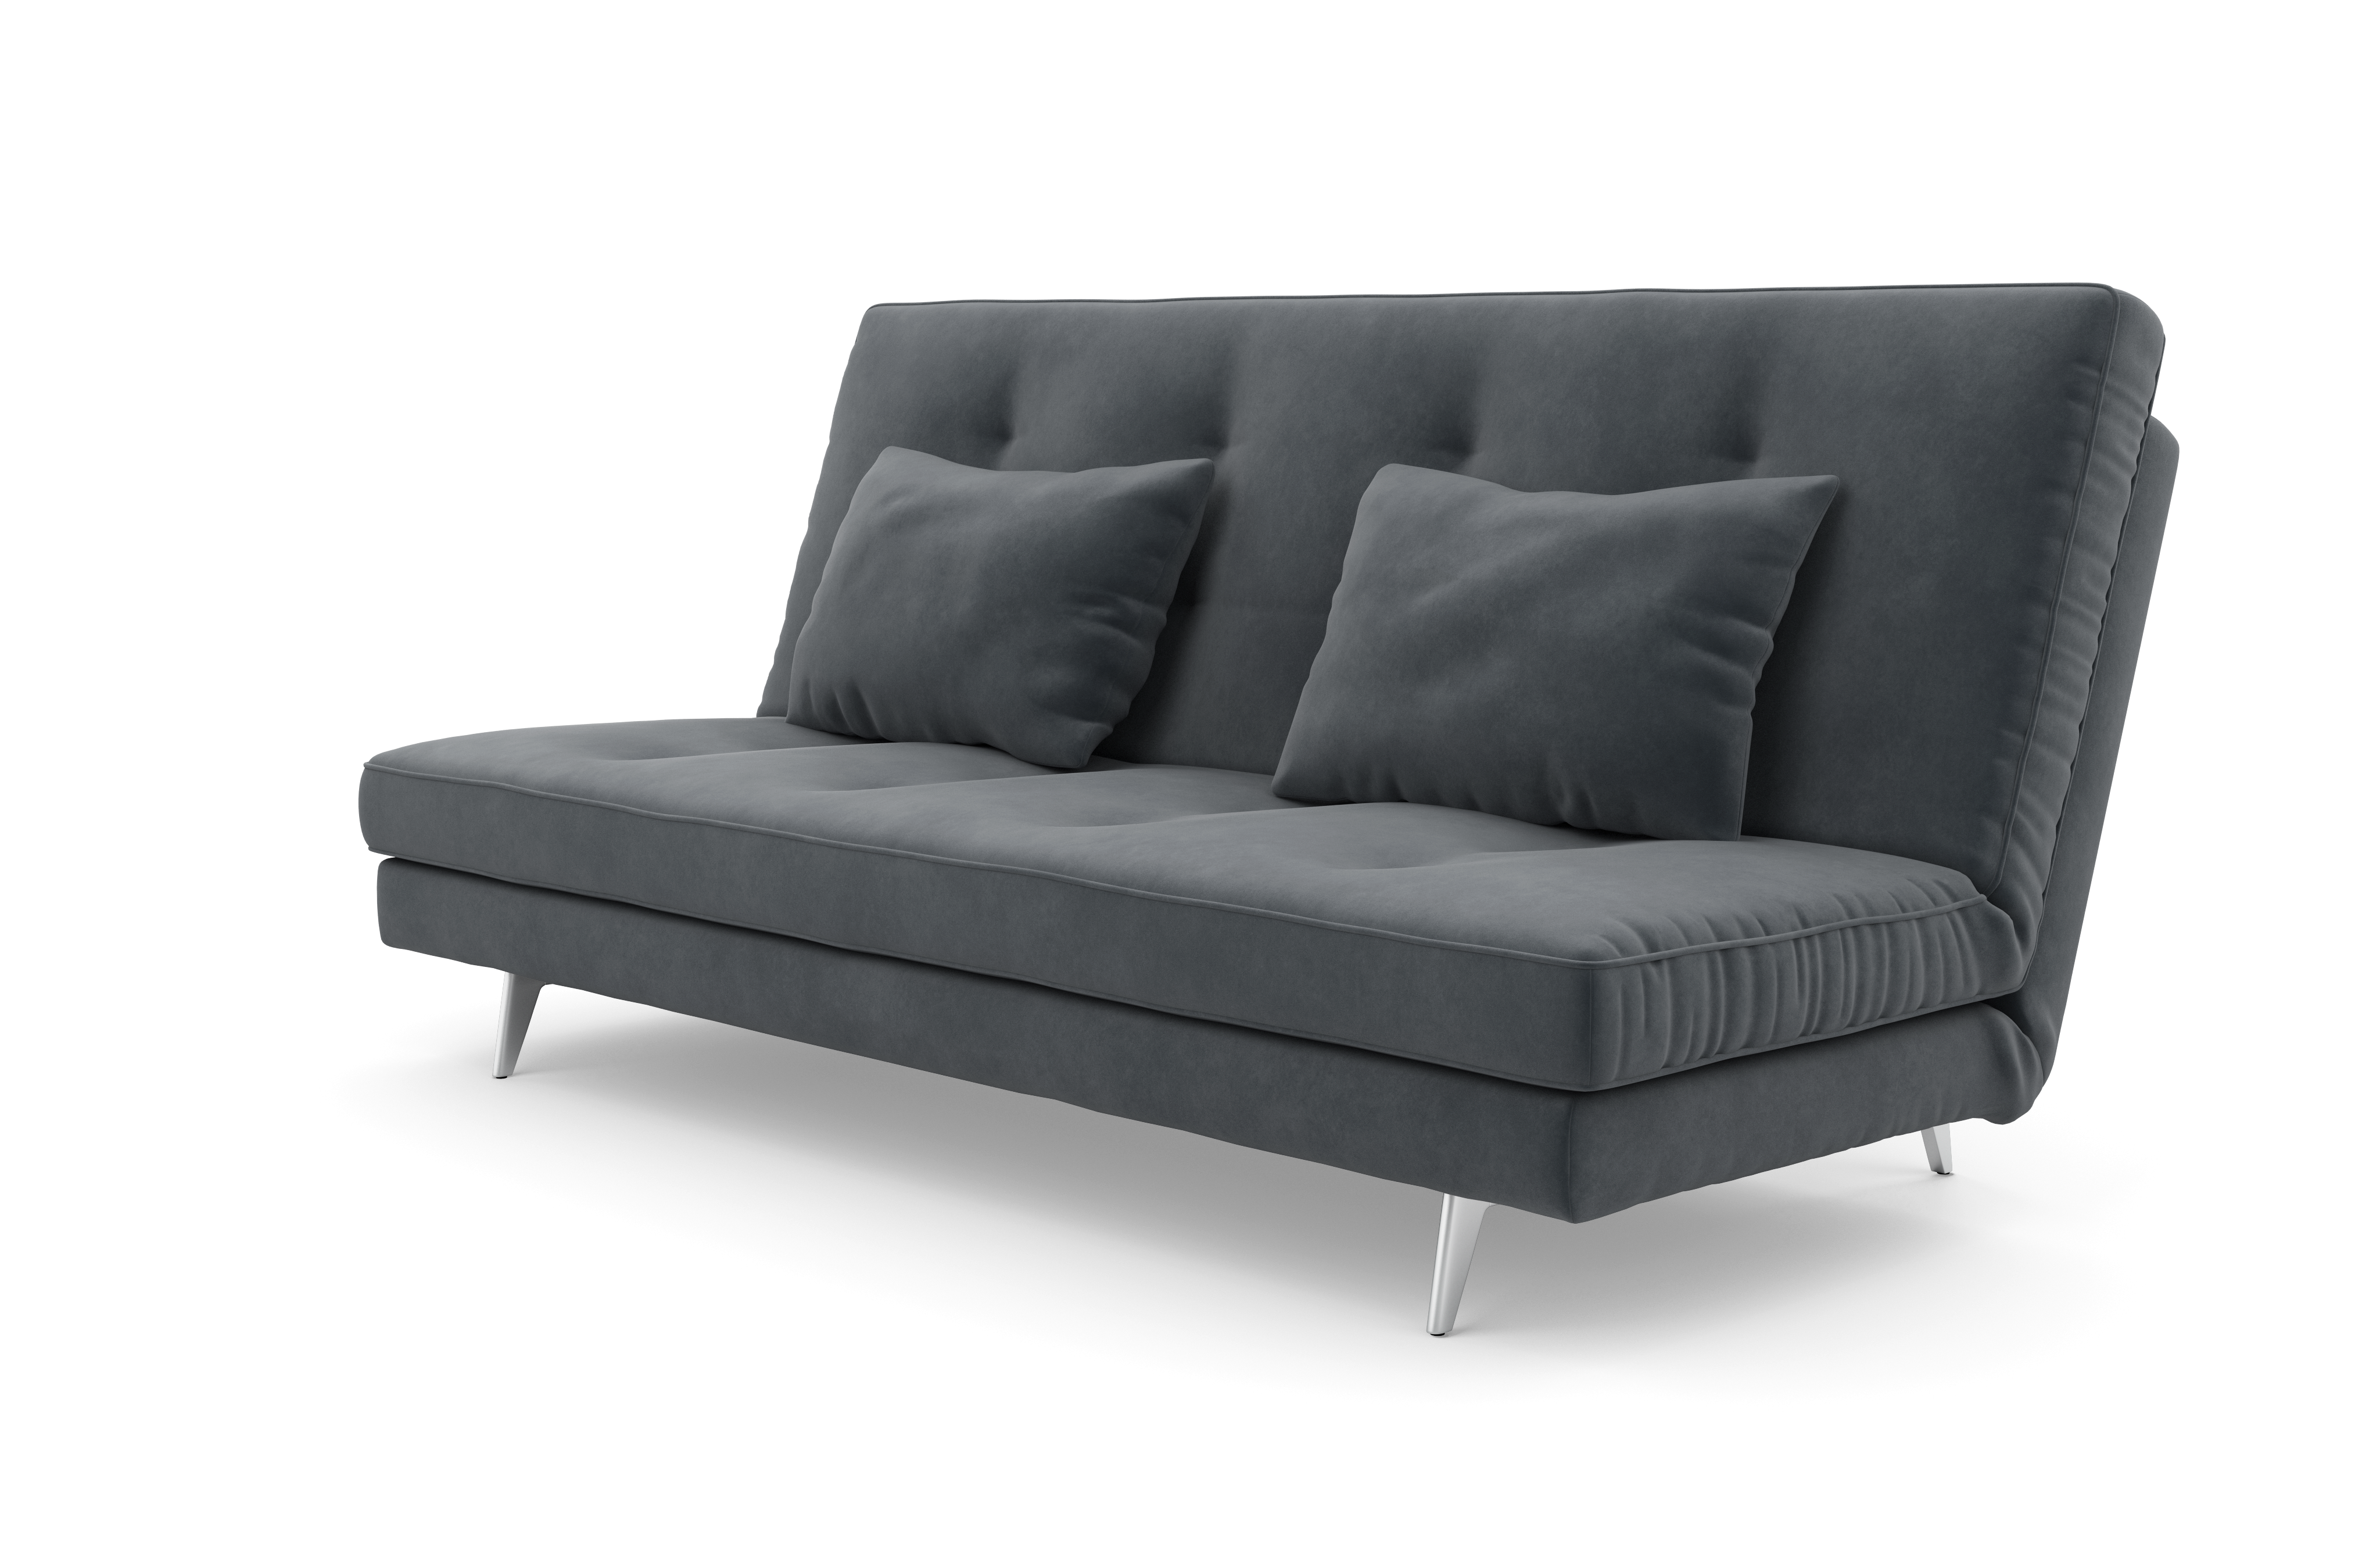 nomade express sofa beds designer didier gomez ligne roset. Black Bedroom Furniture Sets. Home Design Ideas